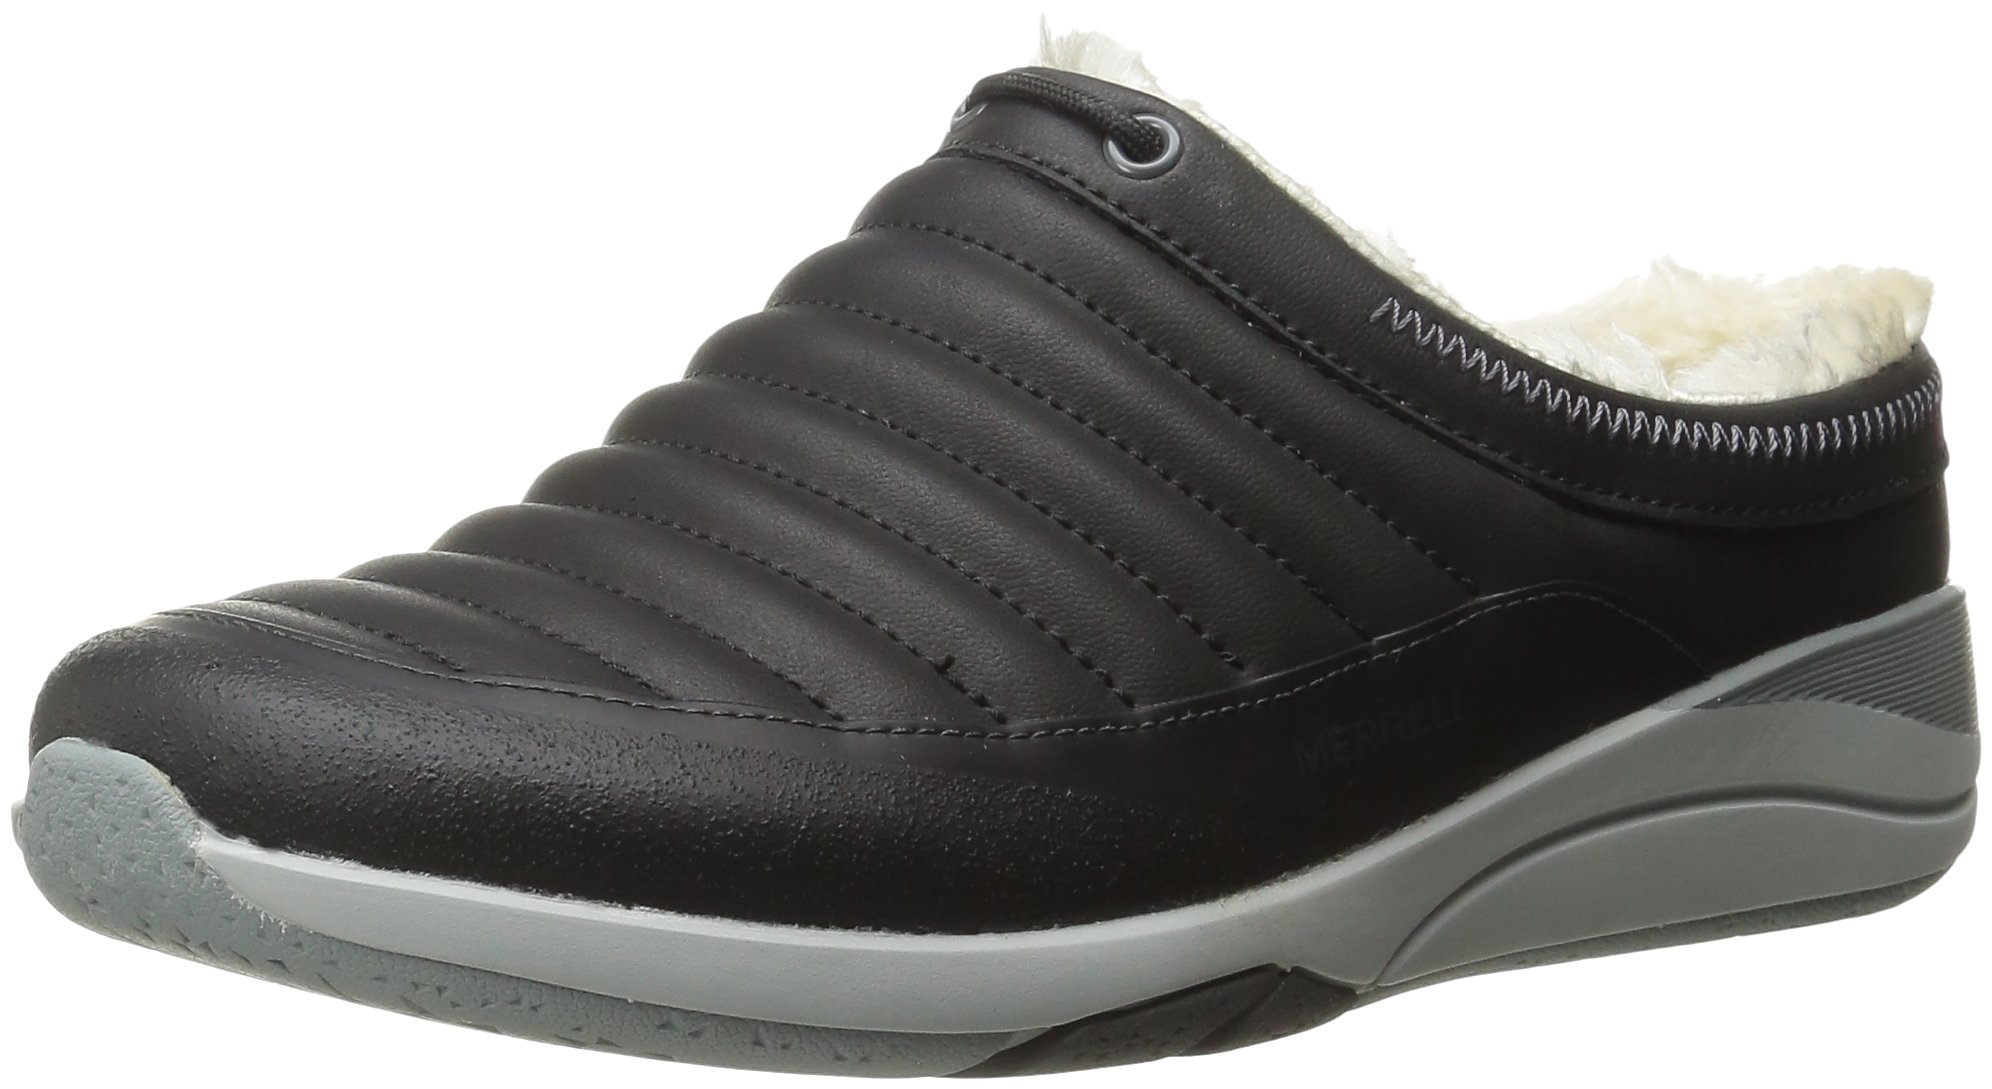 Merrell Women's Applaud Chill Slip-On Shoe, Black, 6 M US